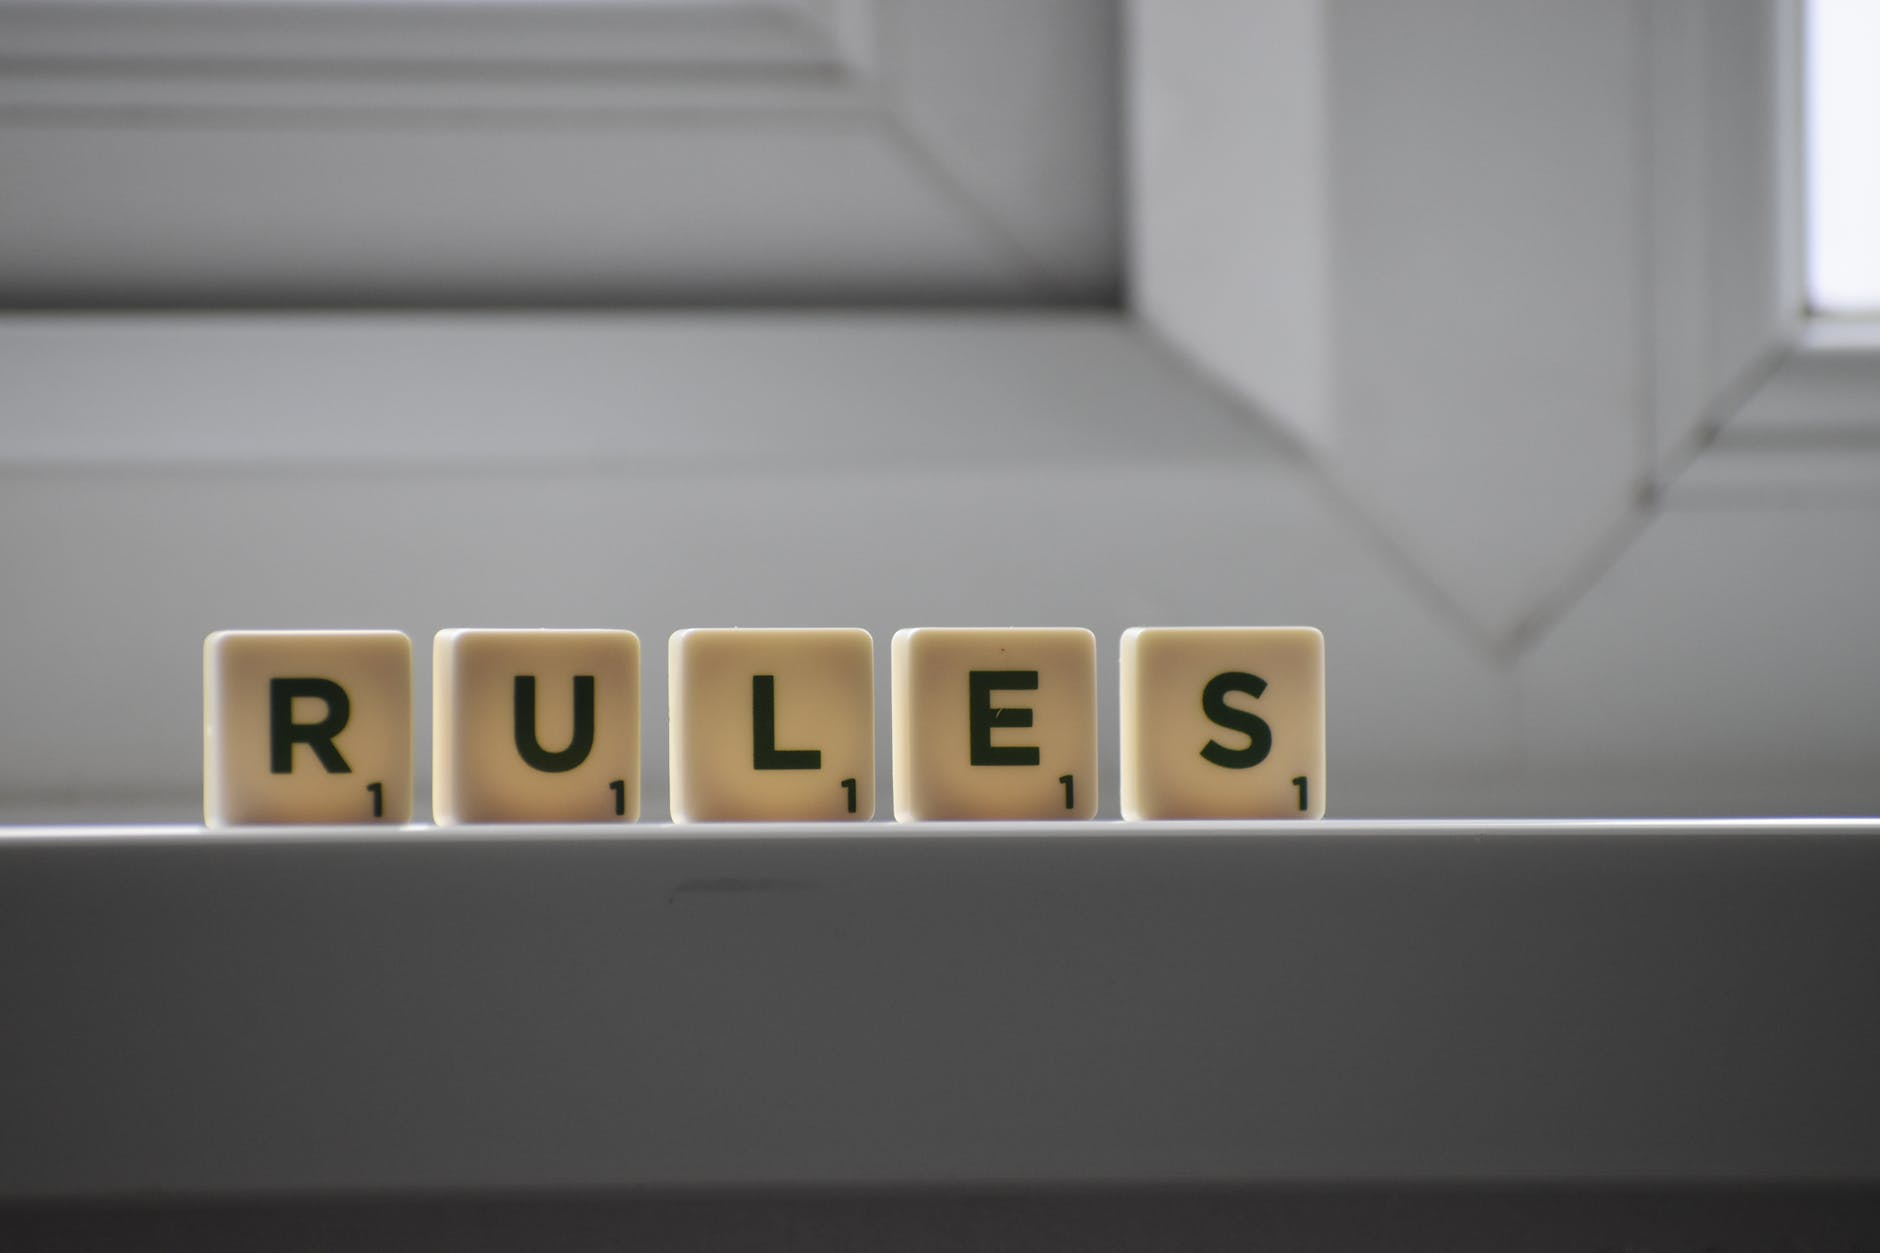 similar cubes with rules inscription on windowsill in building